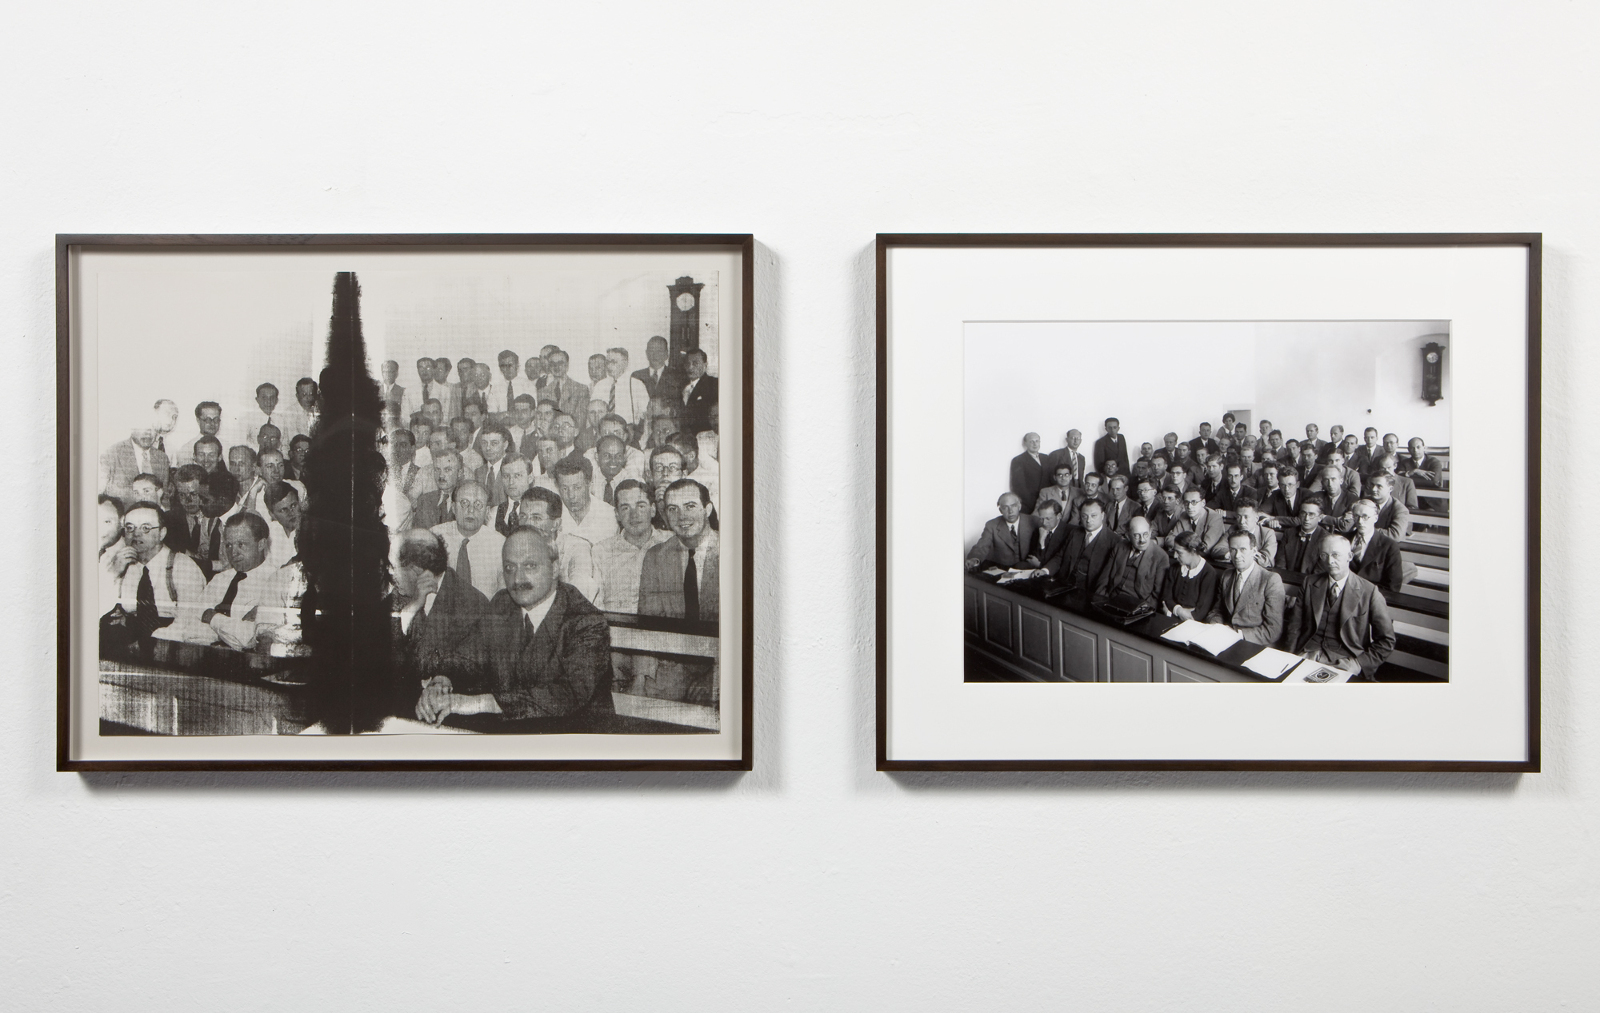 View of  Heisenberg , 2009 (left) and  Heisenberg , 2010 (right) Left: Silkscreen on paper,28 x 21 inches Right: Silver gelatin print,23 x 17 inches